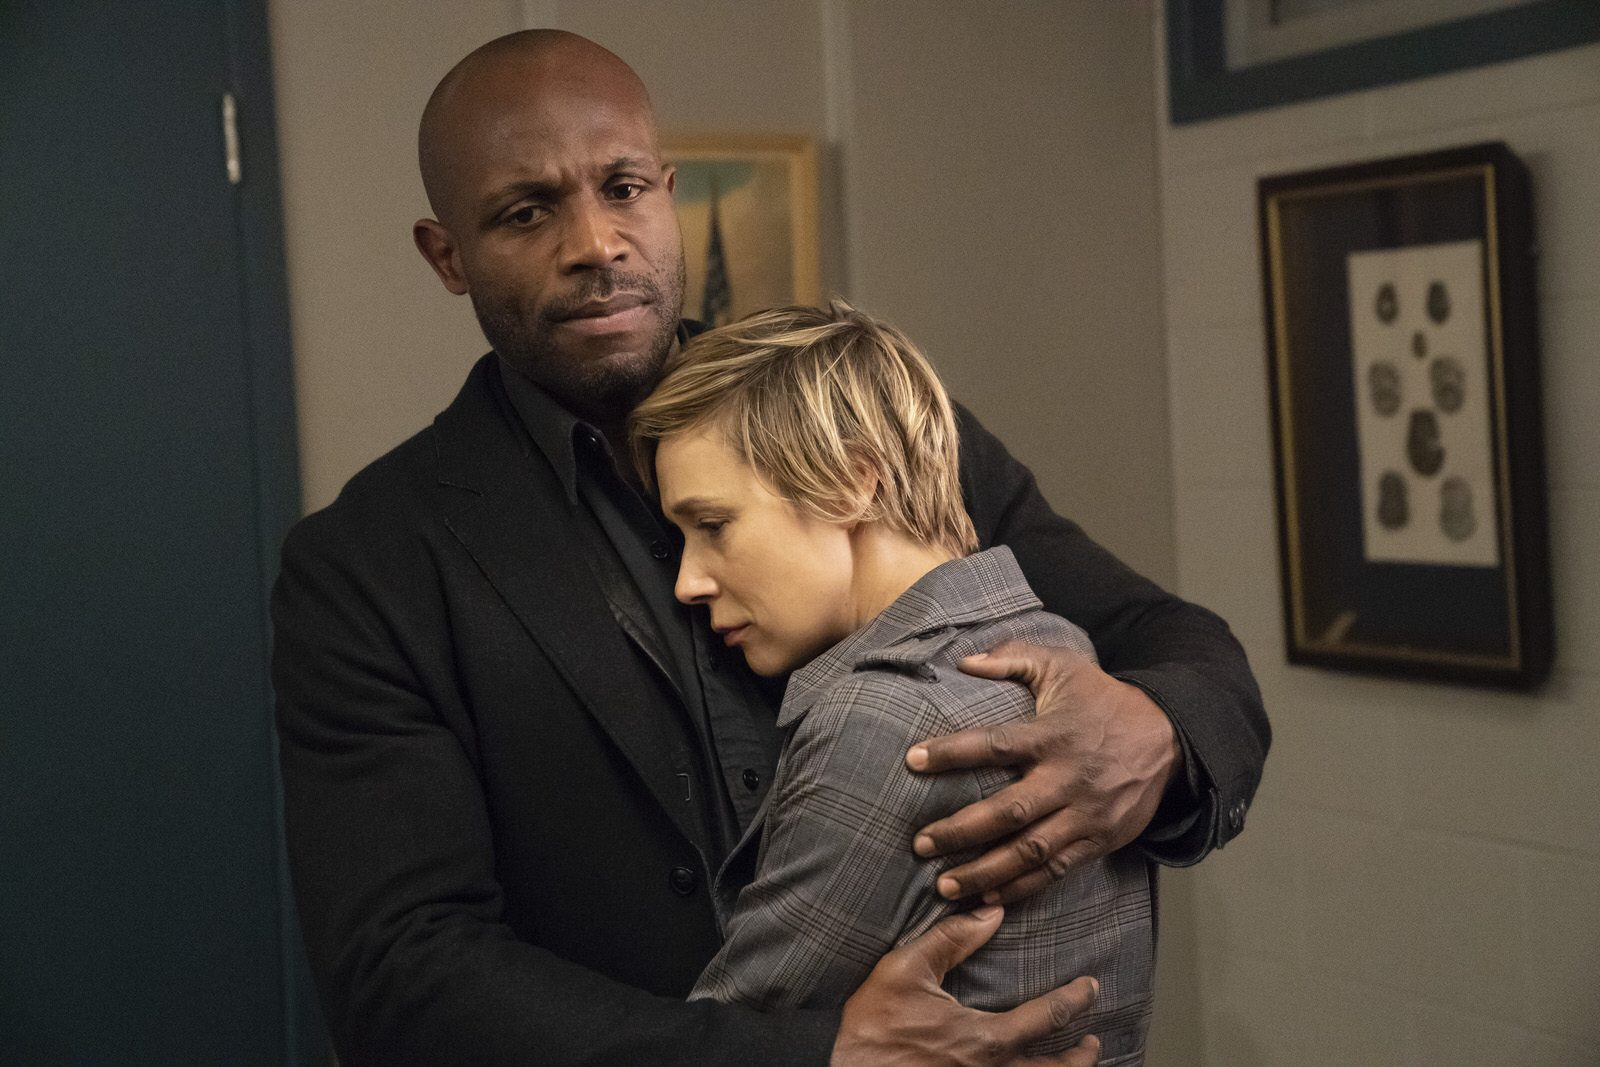 Billy Brown como Nate Lahey y Liza Weil como Bonnie en HTGAWM 5x15 (Final de Temporada)